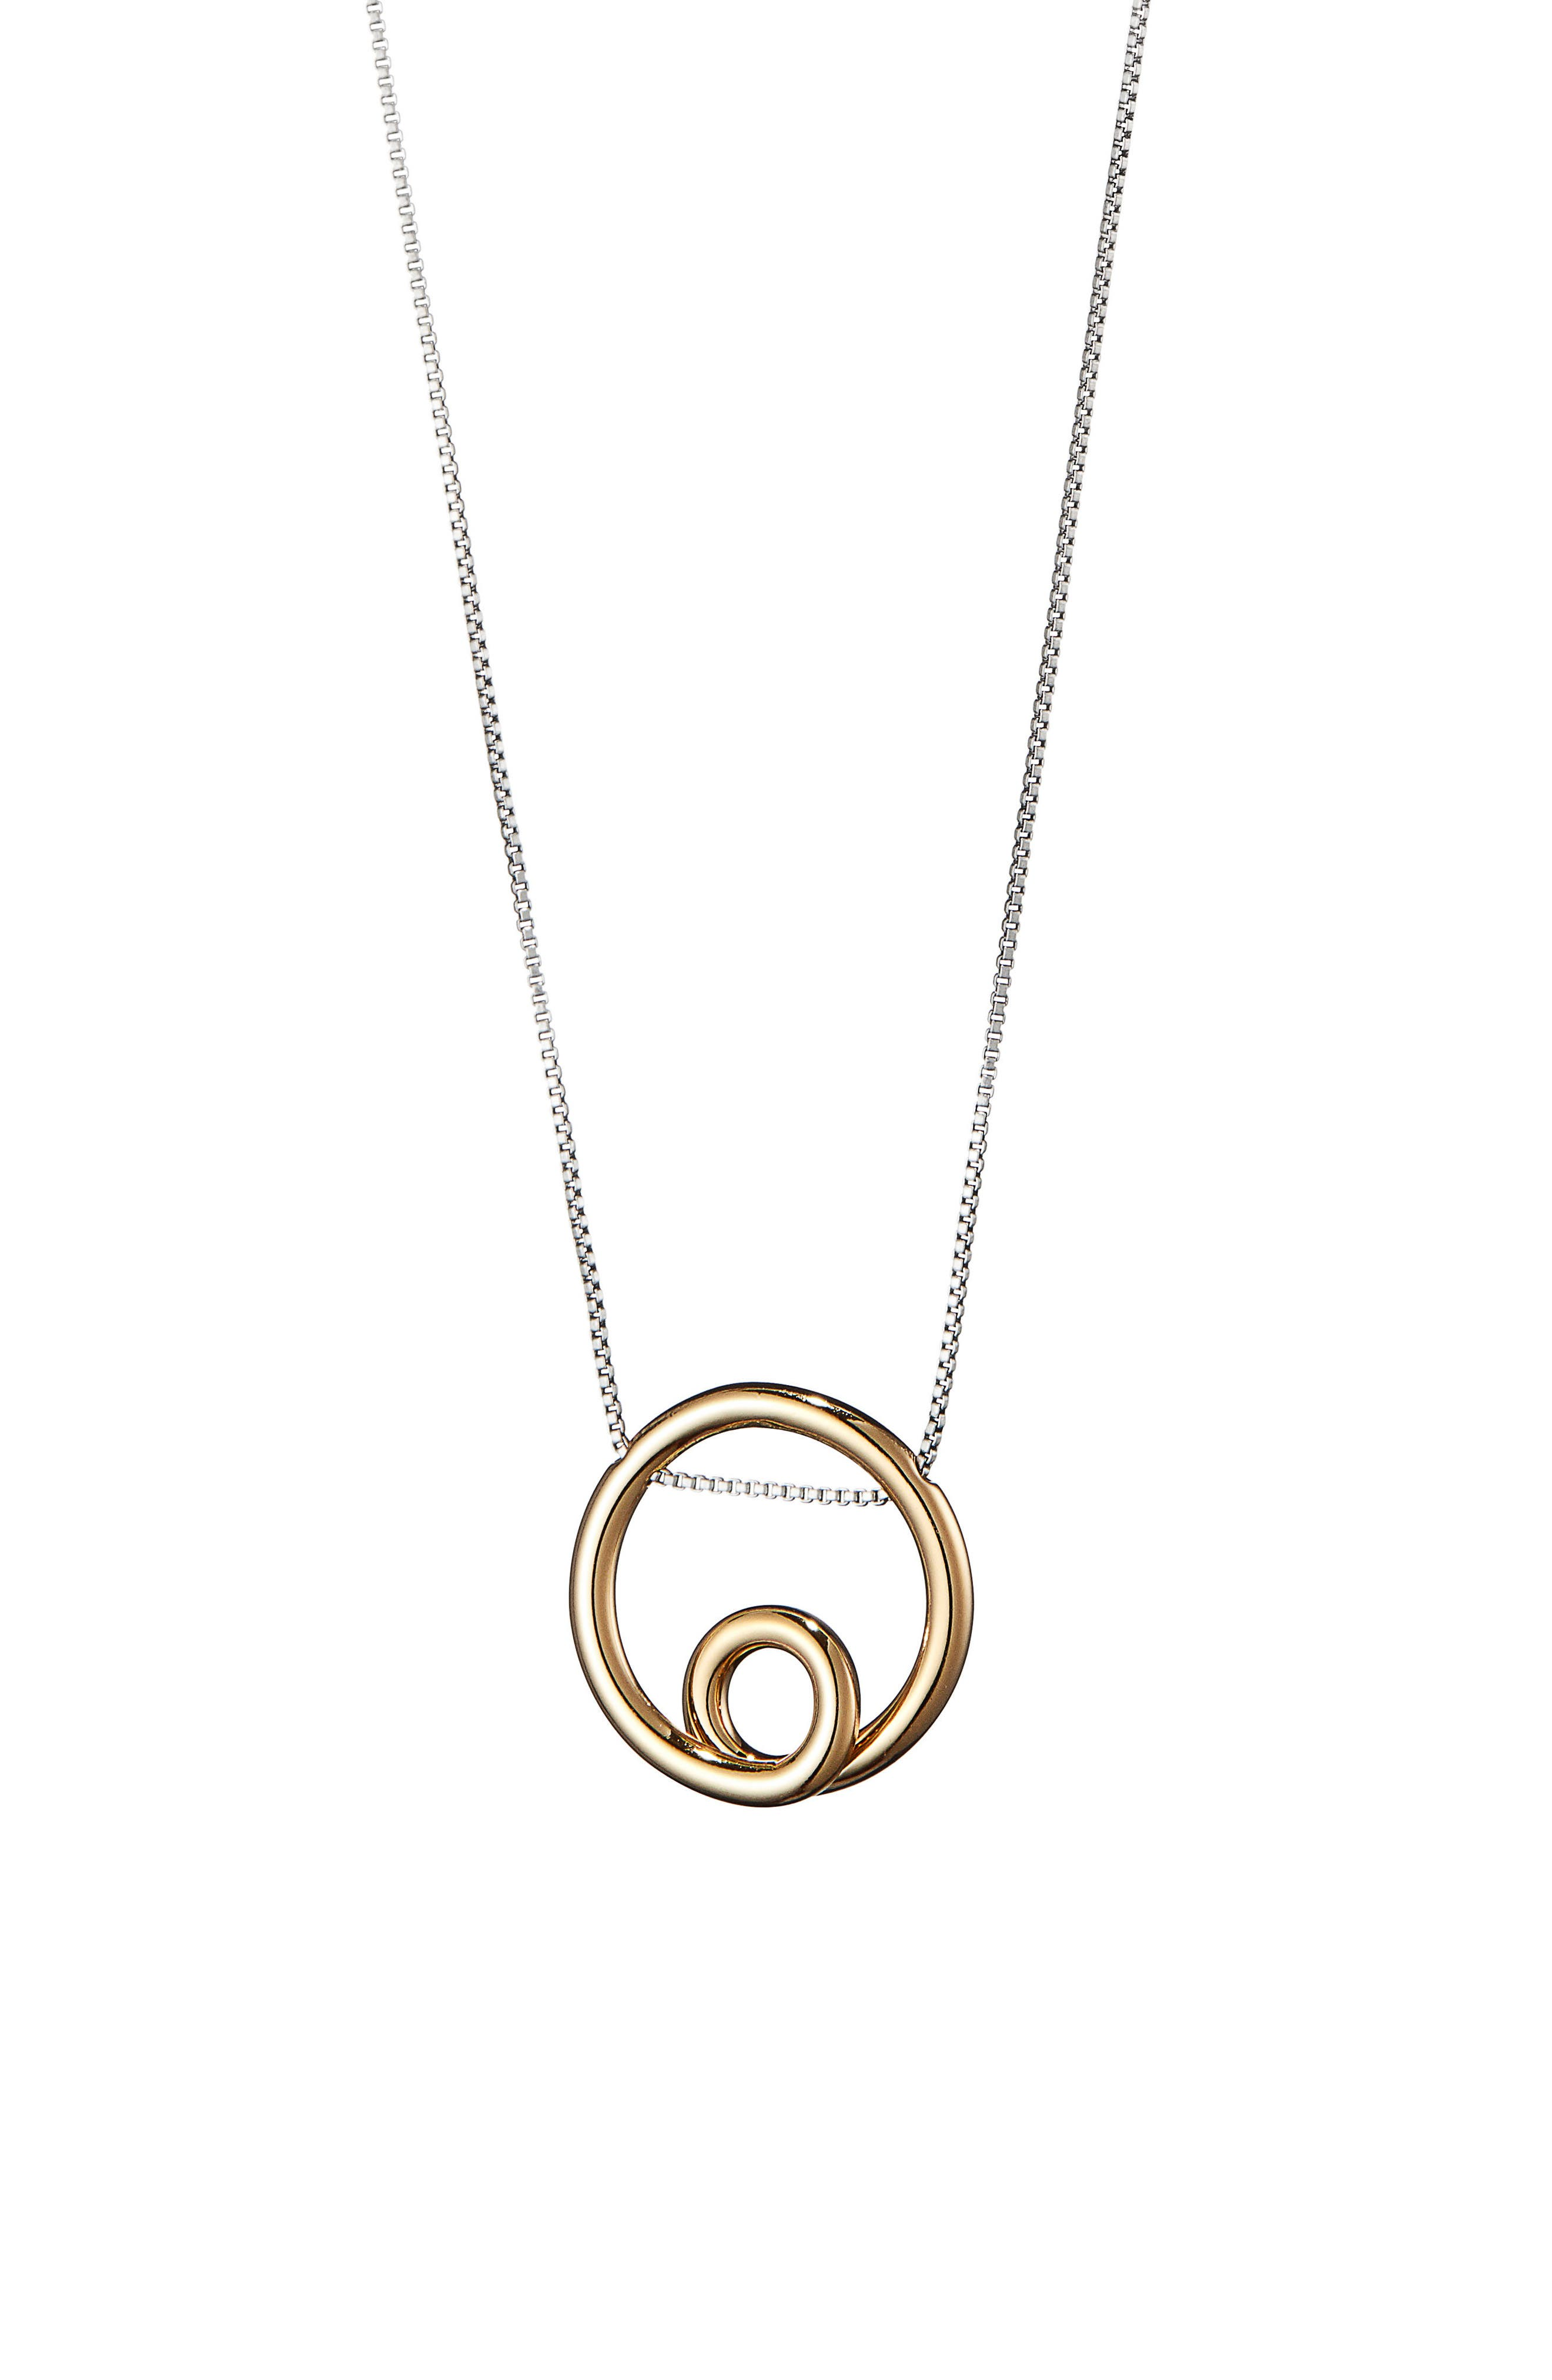 Mini Loop Pendant Necklace,                             Alternate thumbnail 3, color,                             Two Tone